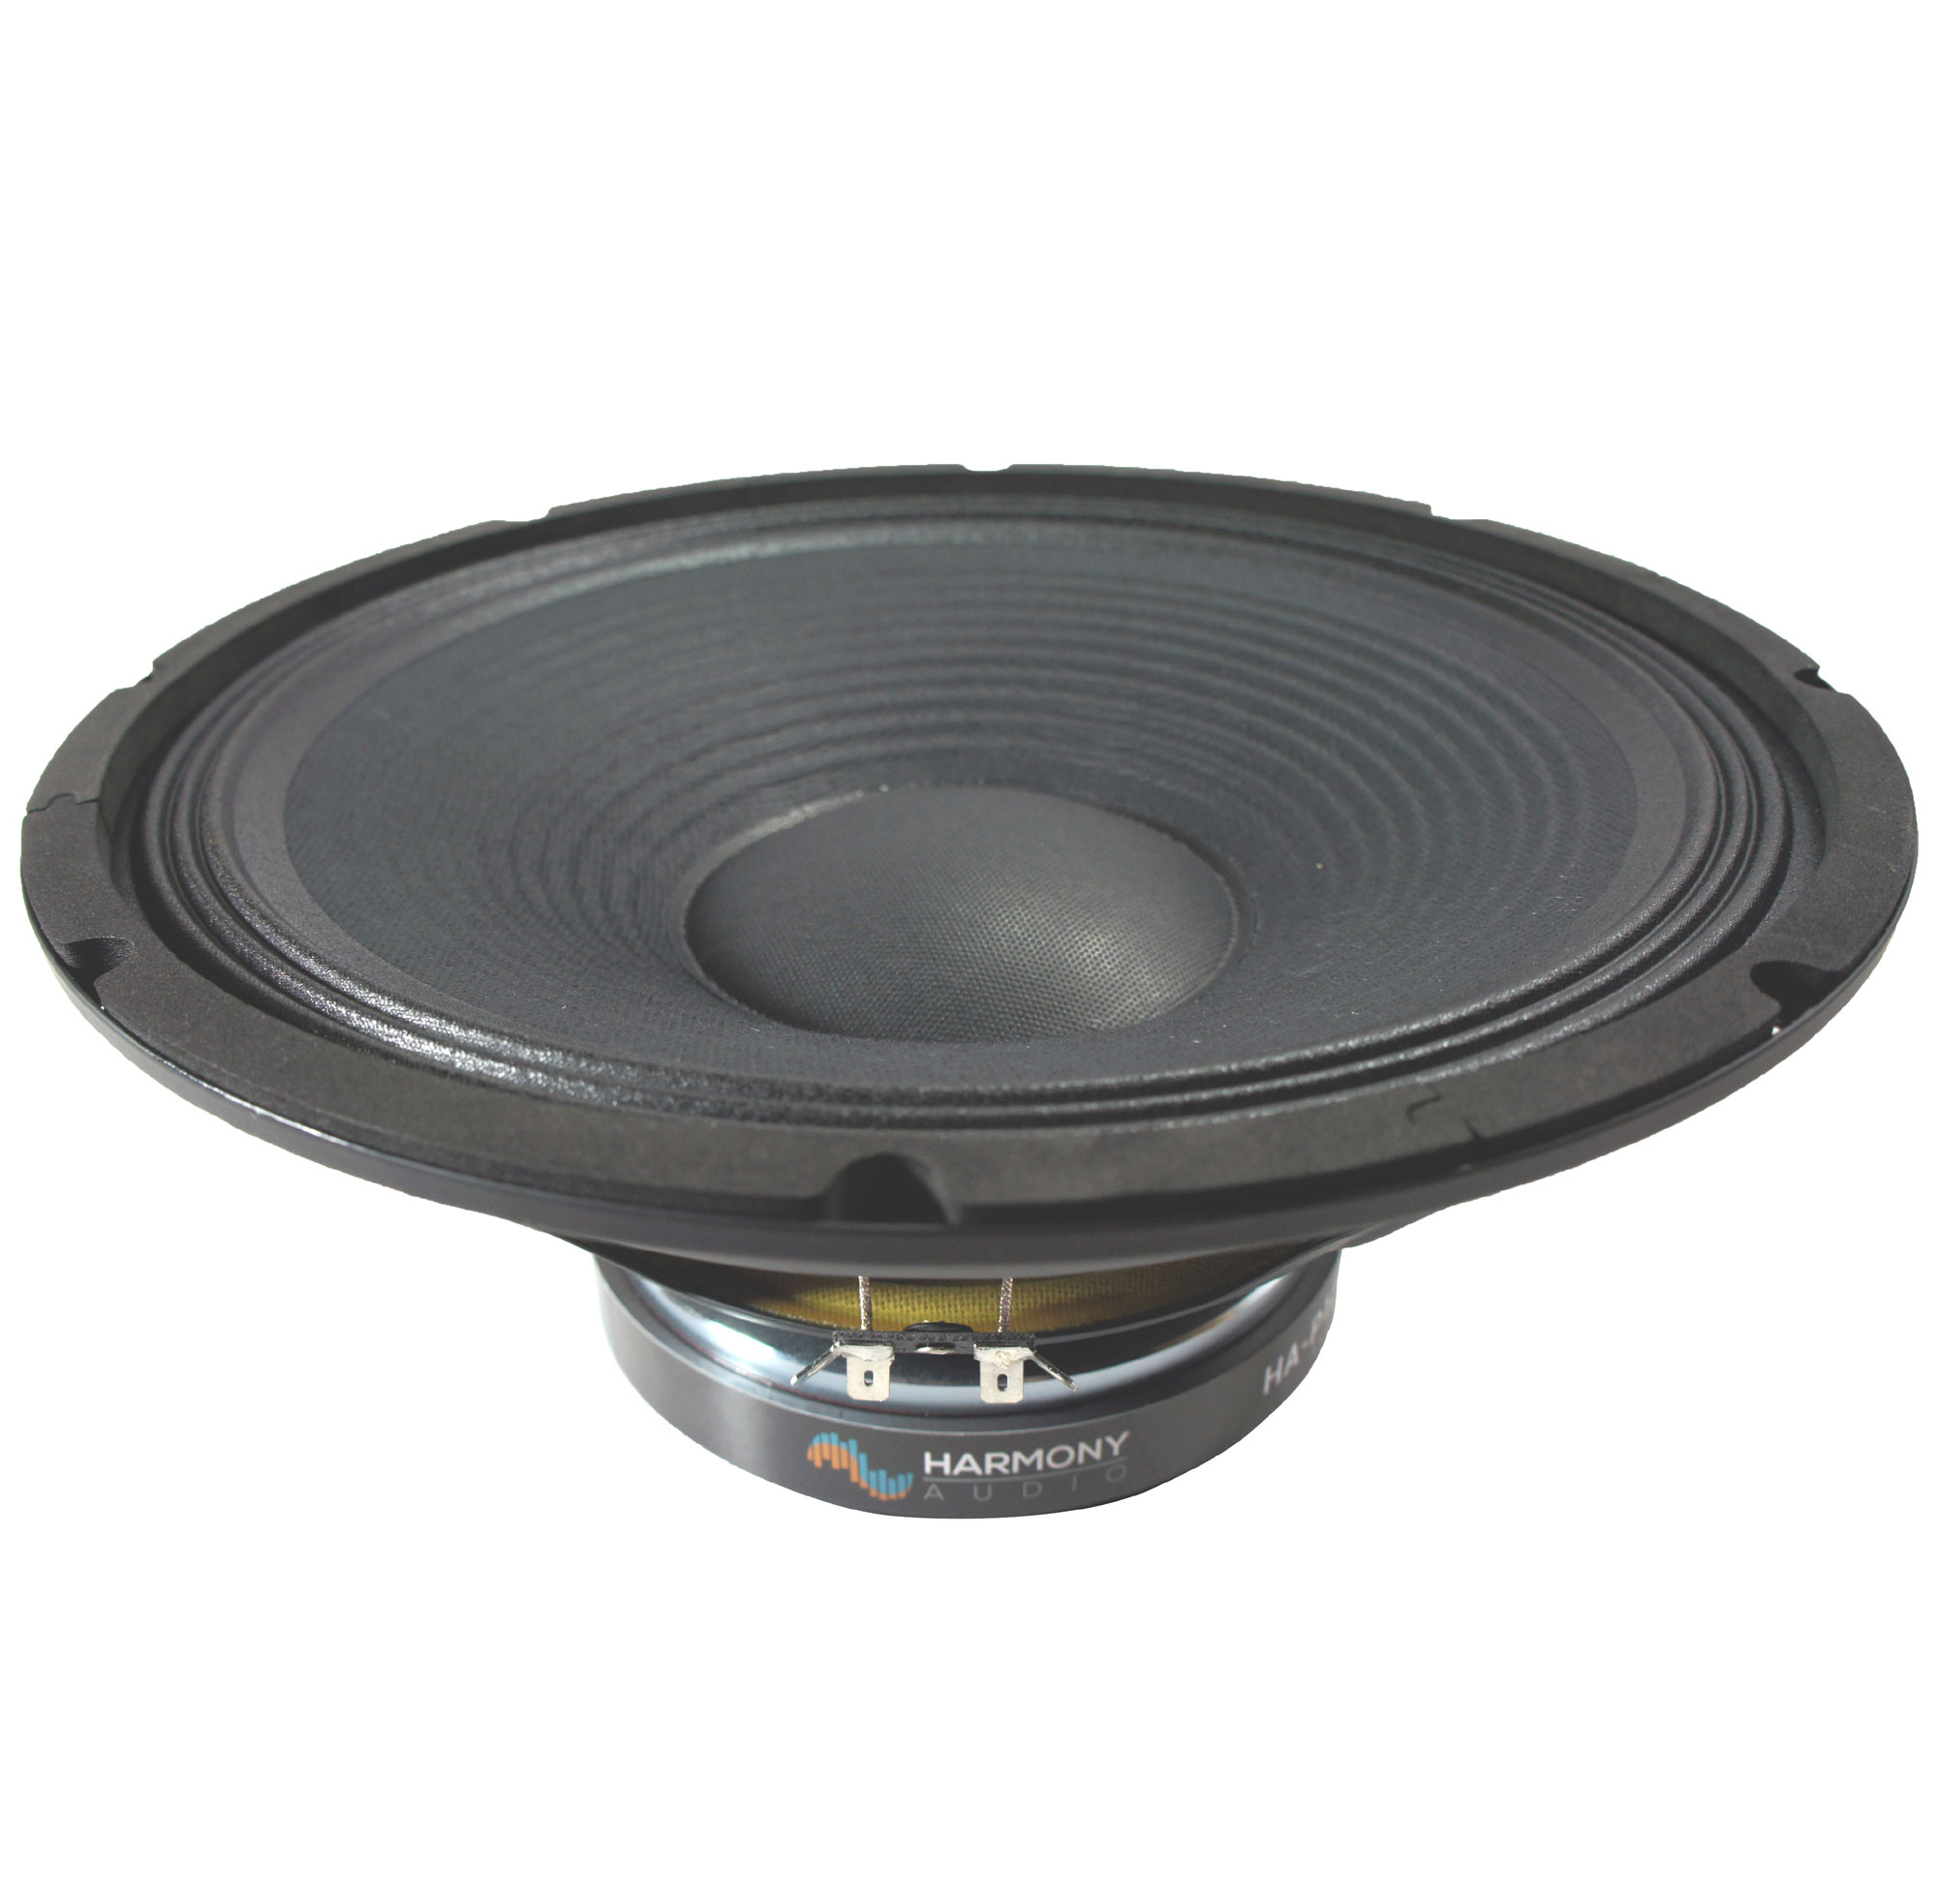 """Harmony HA-P12WS8 Raw Replacement 12"""" Pro PA 500W Subwoofer / Speaker 8 Ohm Woofer - 48oz Magnet"""